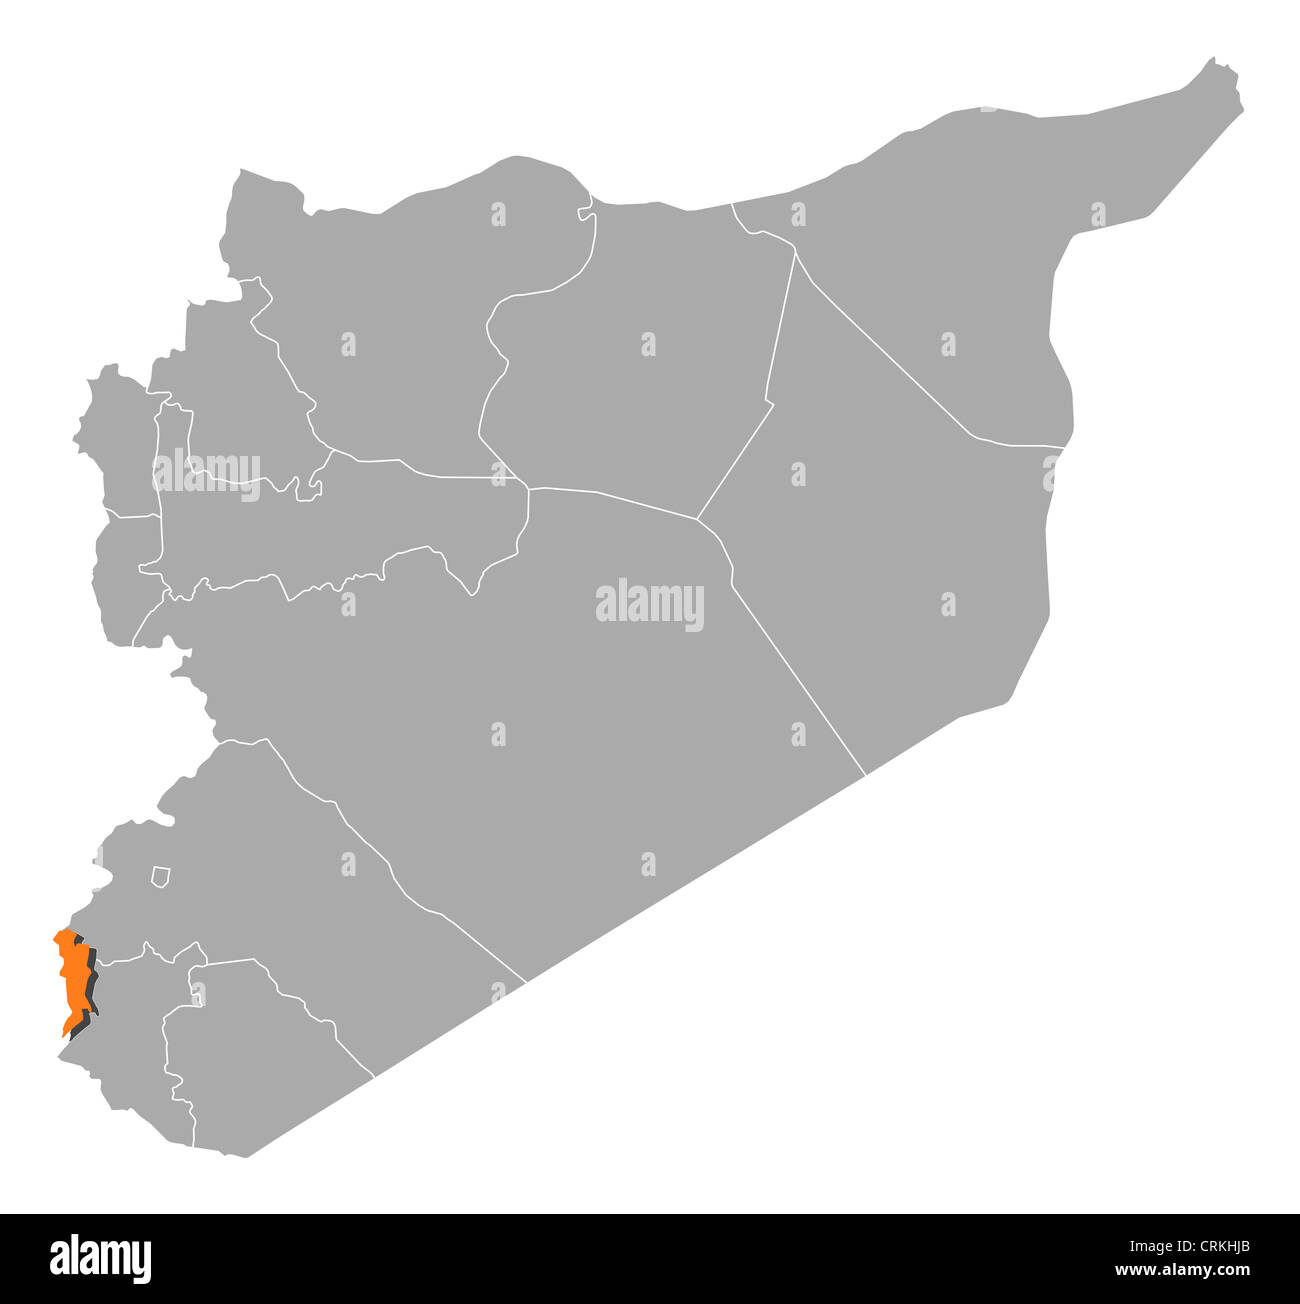 Political map of syria with the several governorates where quneitra political map of syria with the several governorates where quneitra is highlighted gumiabroncs Images